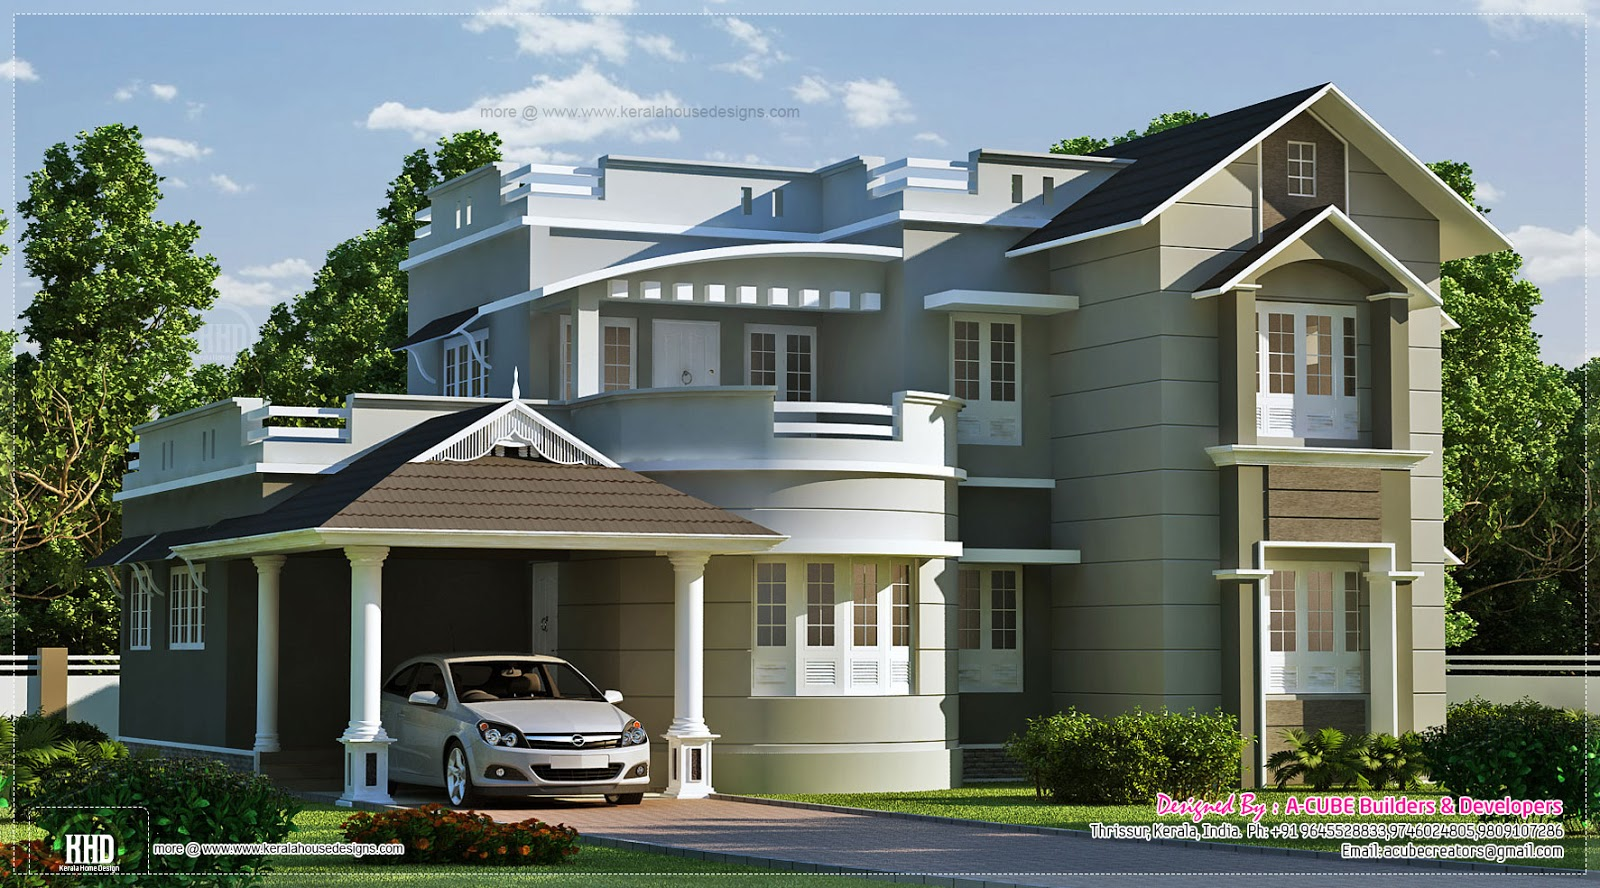 New style home exterior in 1800 kerala home for New house styles pictures